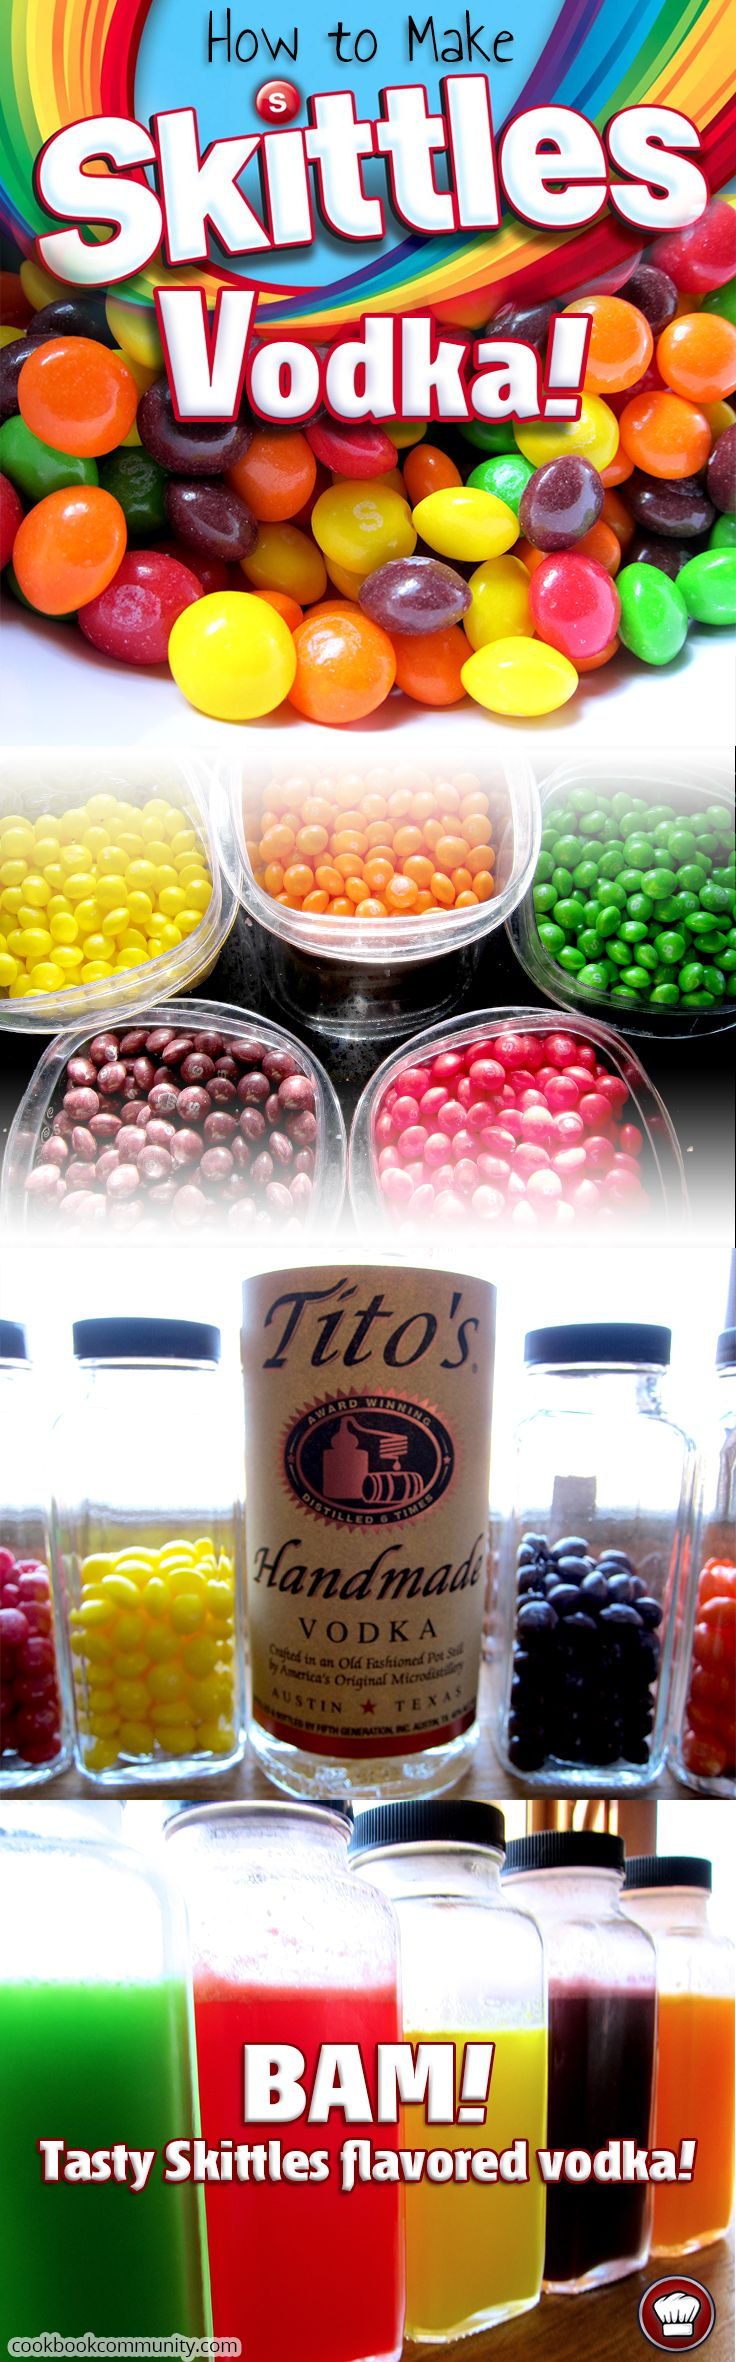 SKITTLES INFUSED VODKA - Learn how to make your own Skittles flavored vodka with this easy recipe. Photos and Instructions inside!